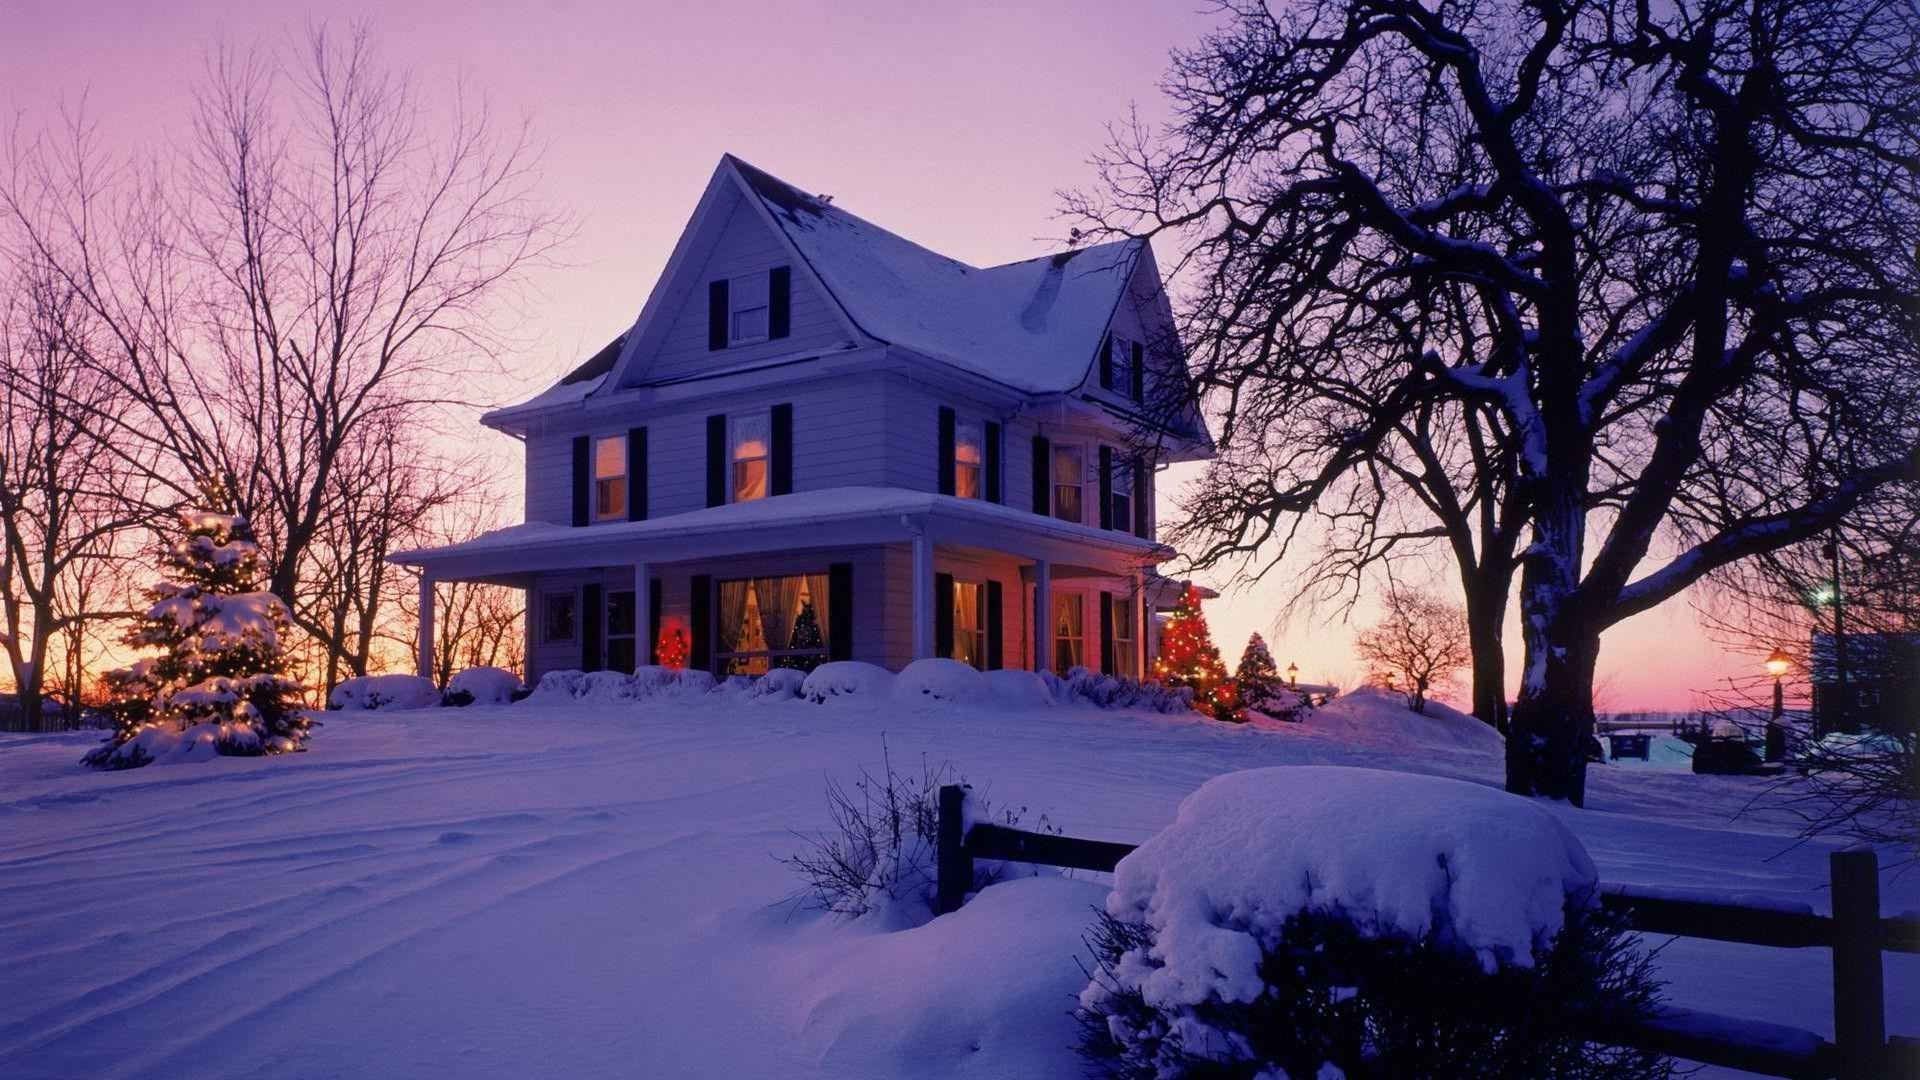 New England Fall Desktop Wallpaper Victorian House In Winter Image Id 200419 Image Abyss